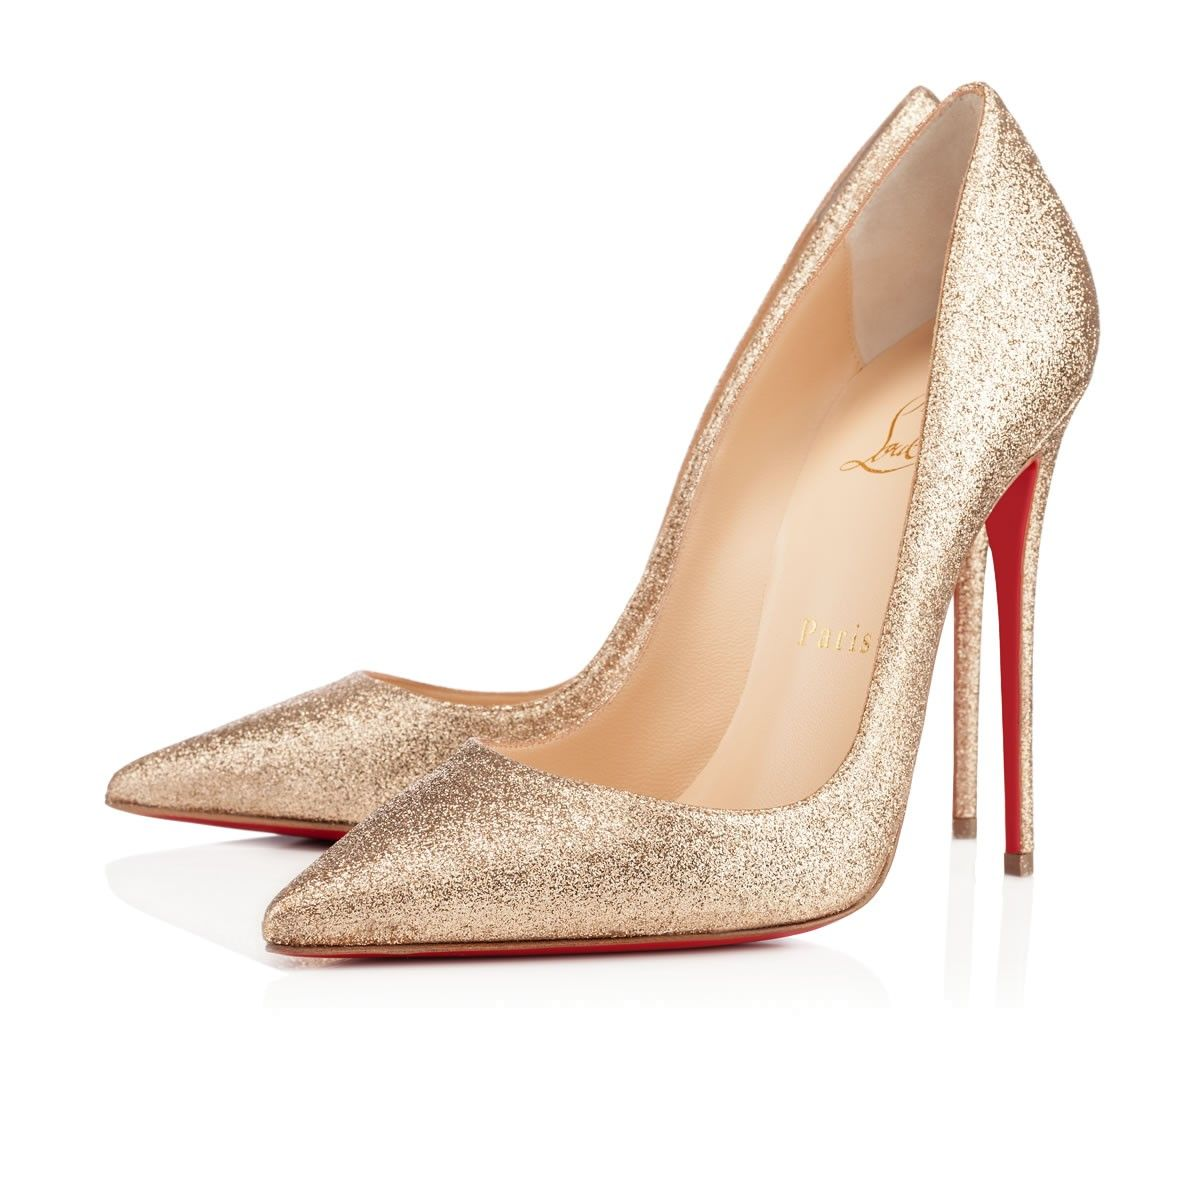 e1d38663f75 Louboutin So Kate, Glitter | Shoes Shoes in 2019 | Christian ...